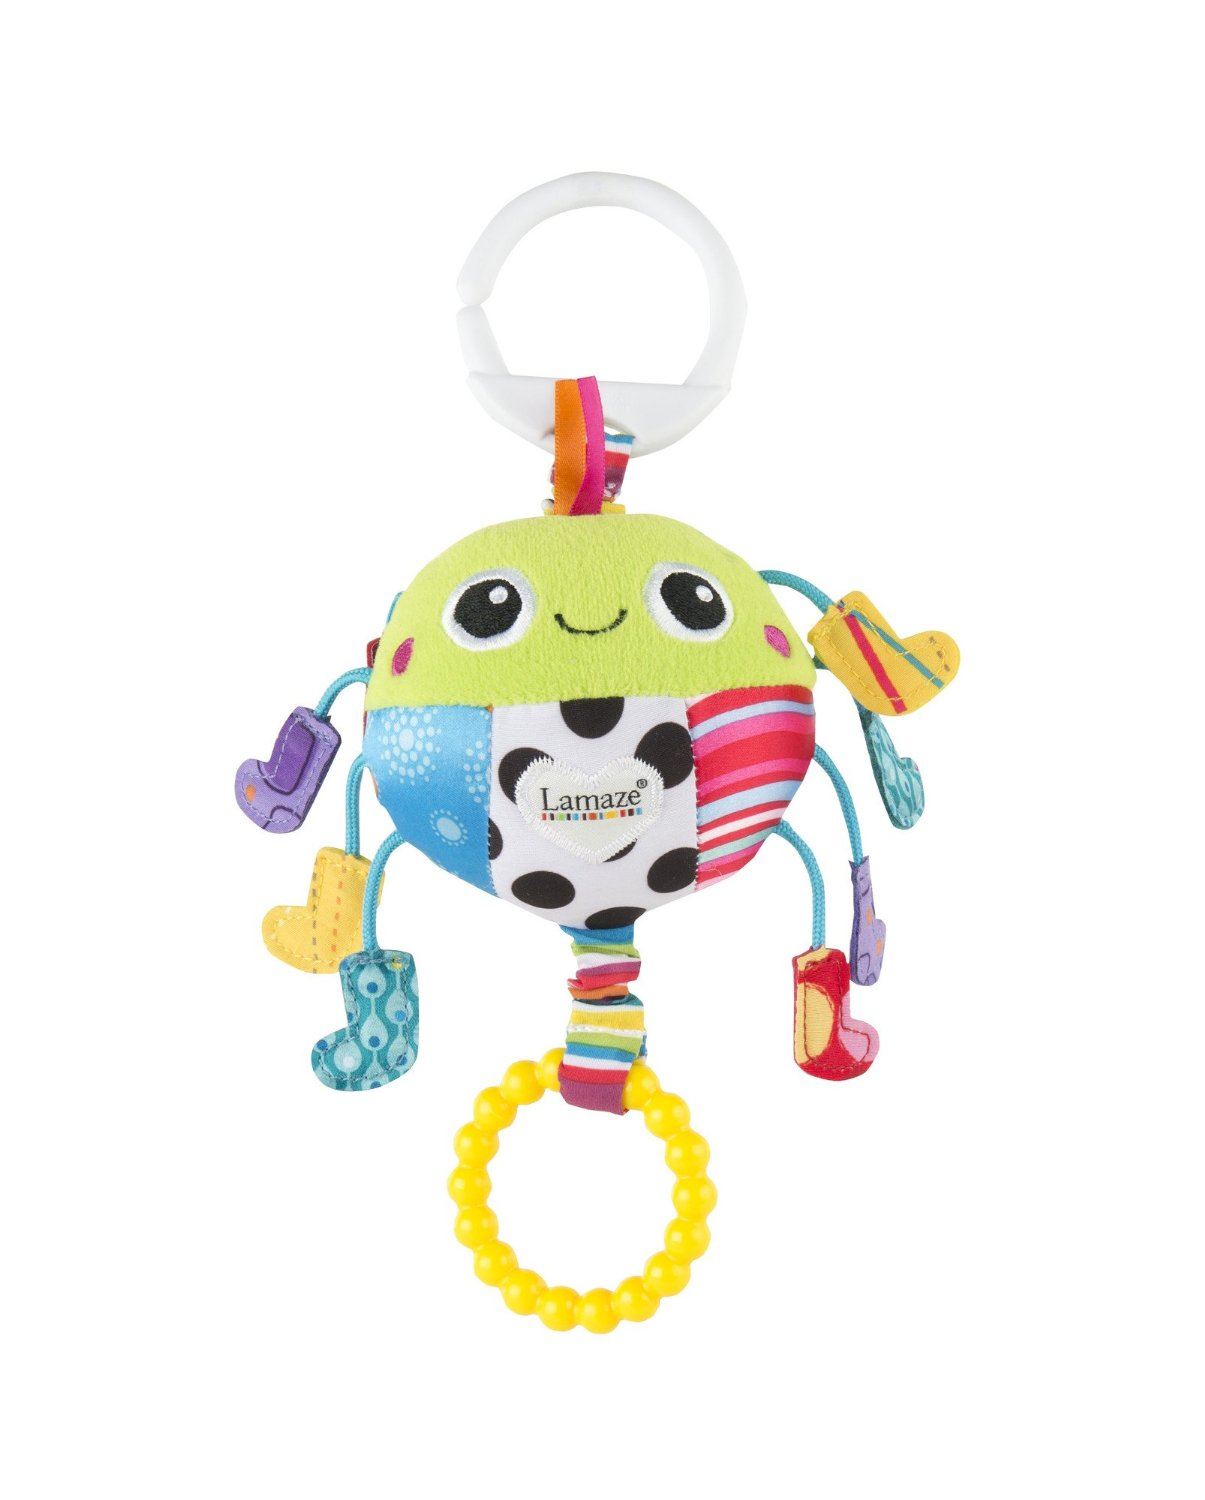 Lamaze Spider In Socks